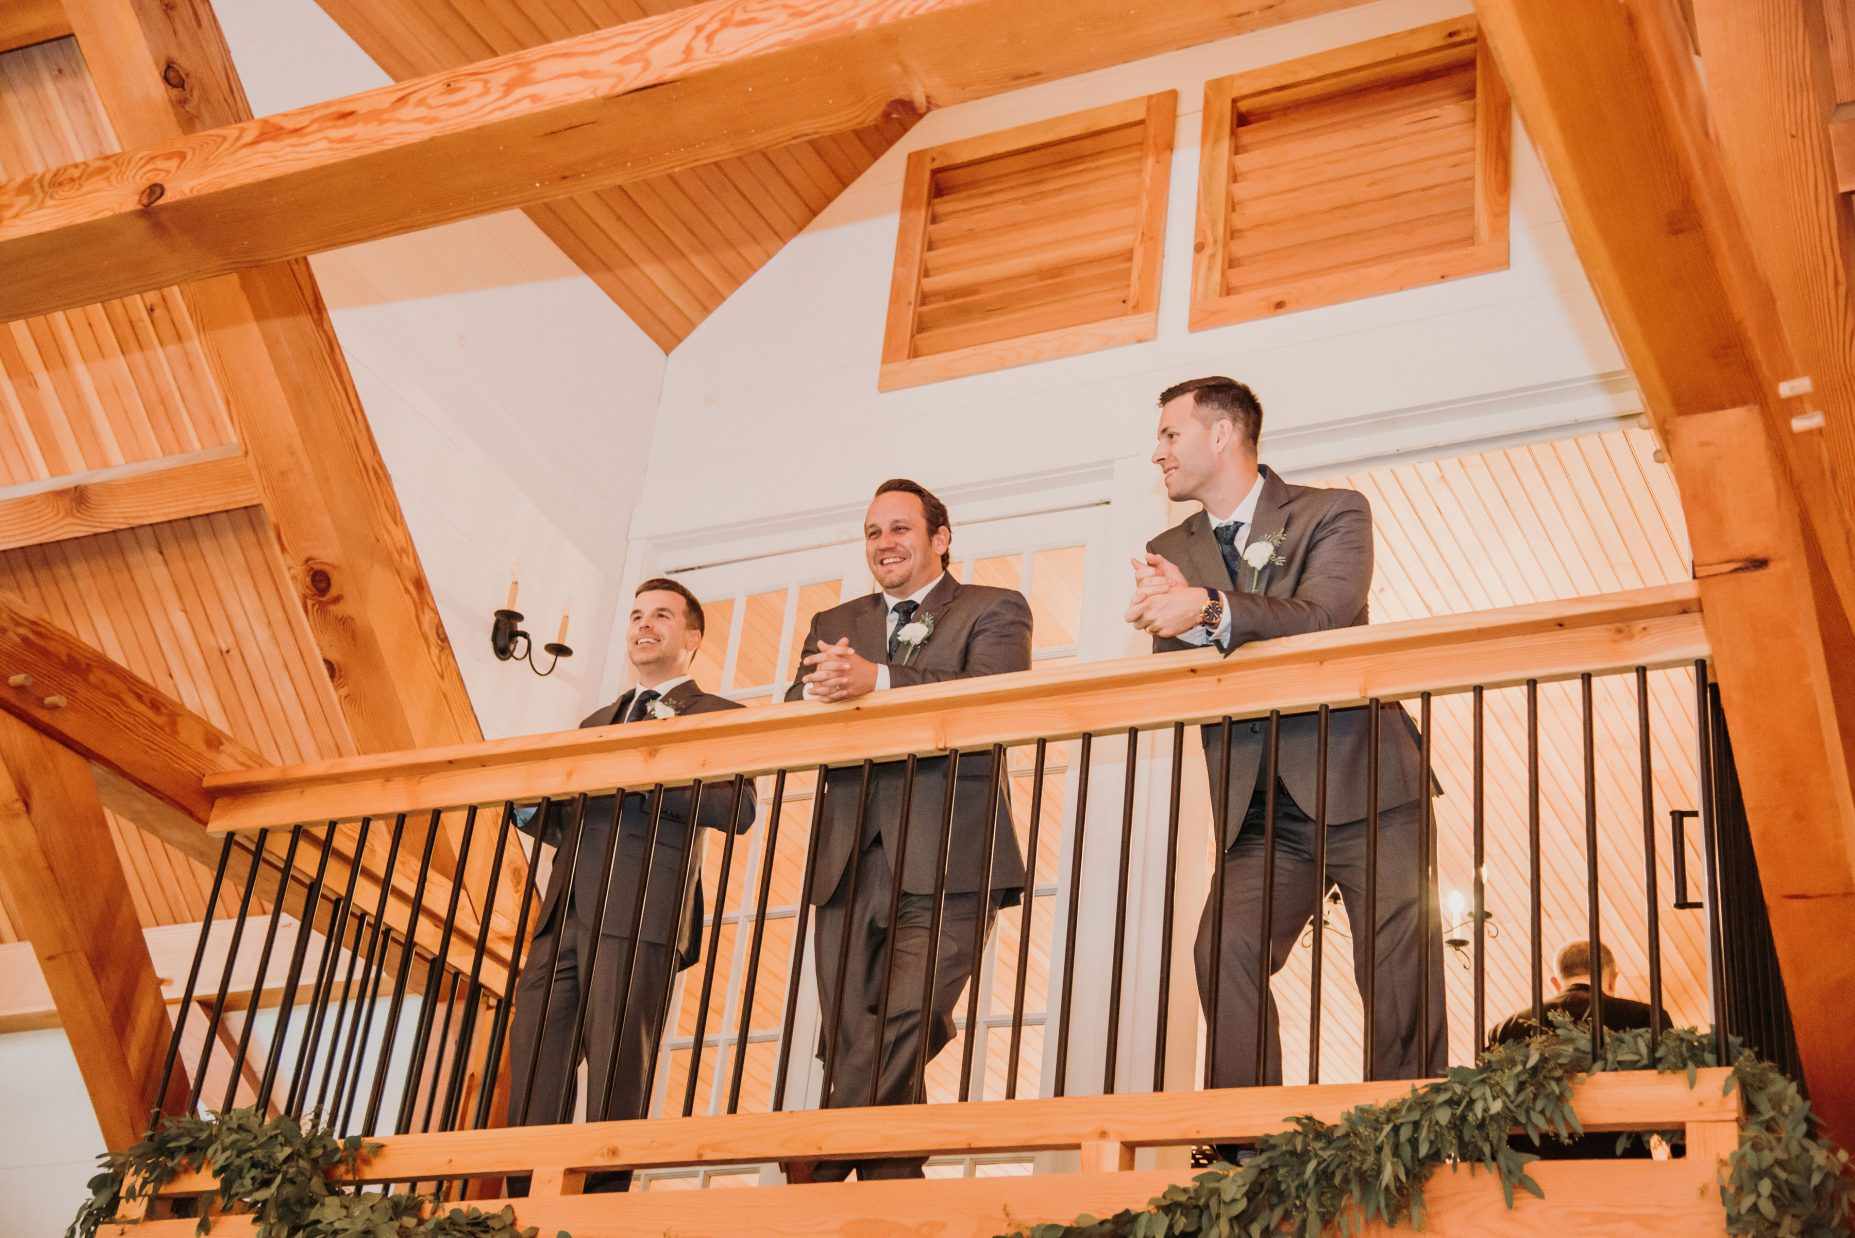 Groomsmen on the Balcony